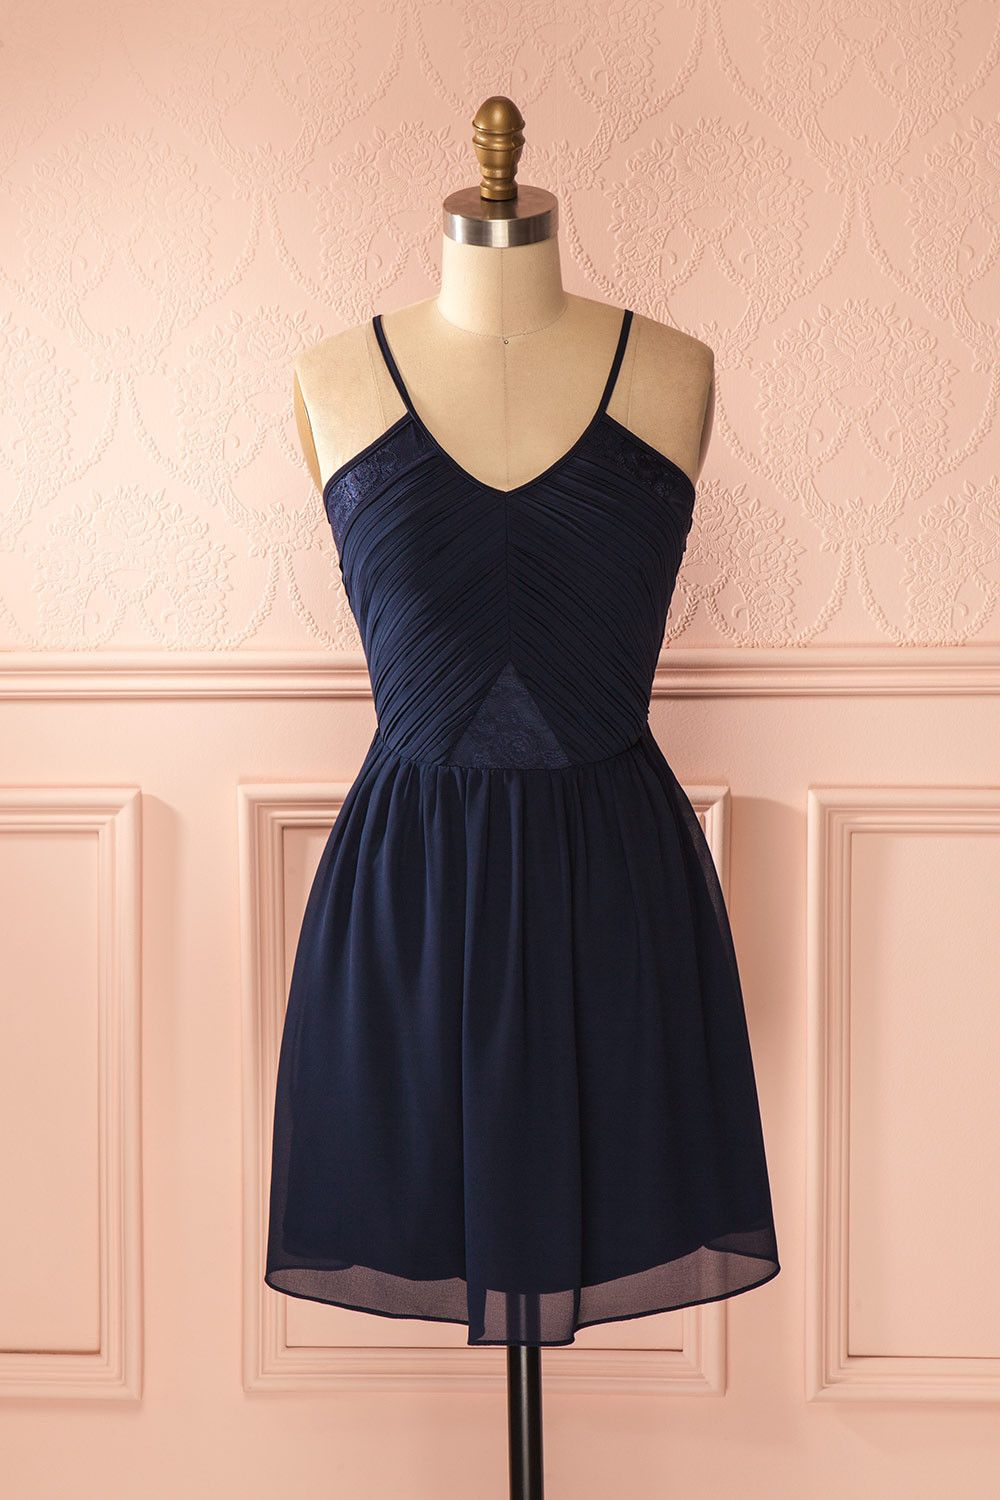 Adanna robe clothes and navy